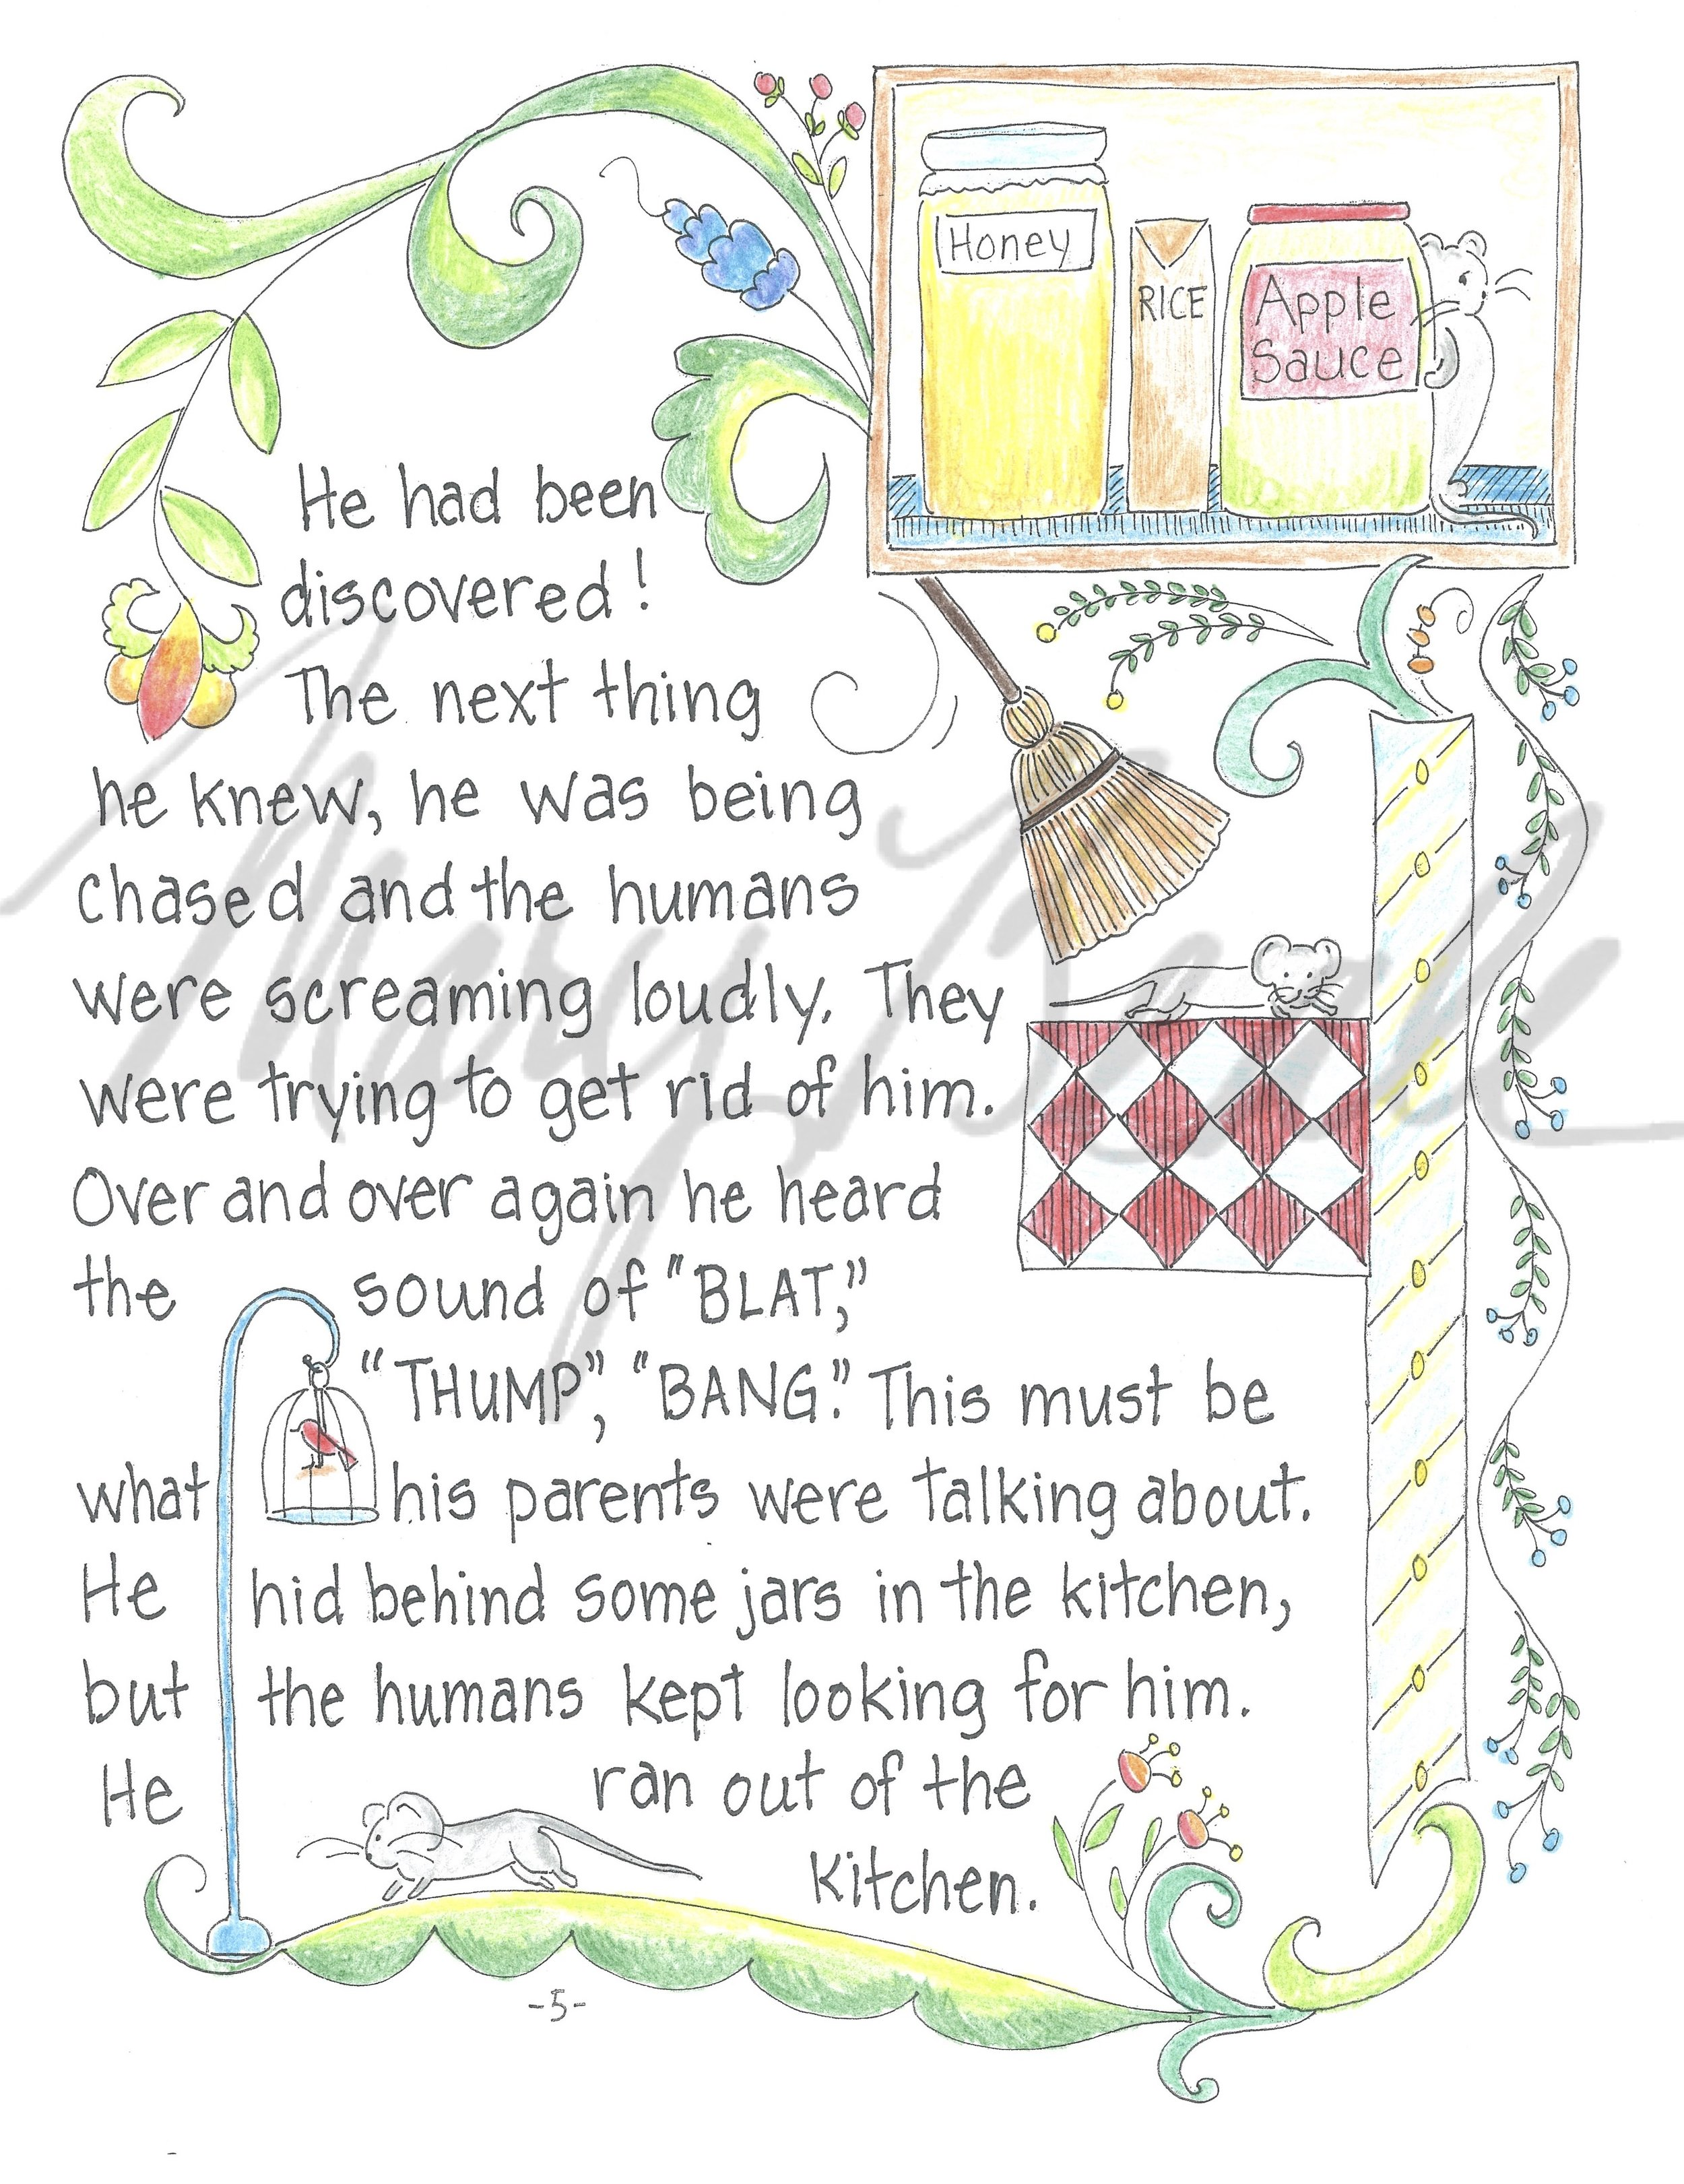 TheMouseHouse-Color (With Watermark)-page6.jpg